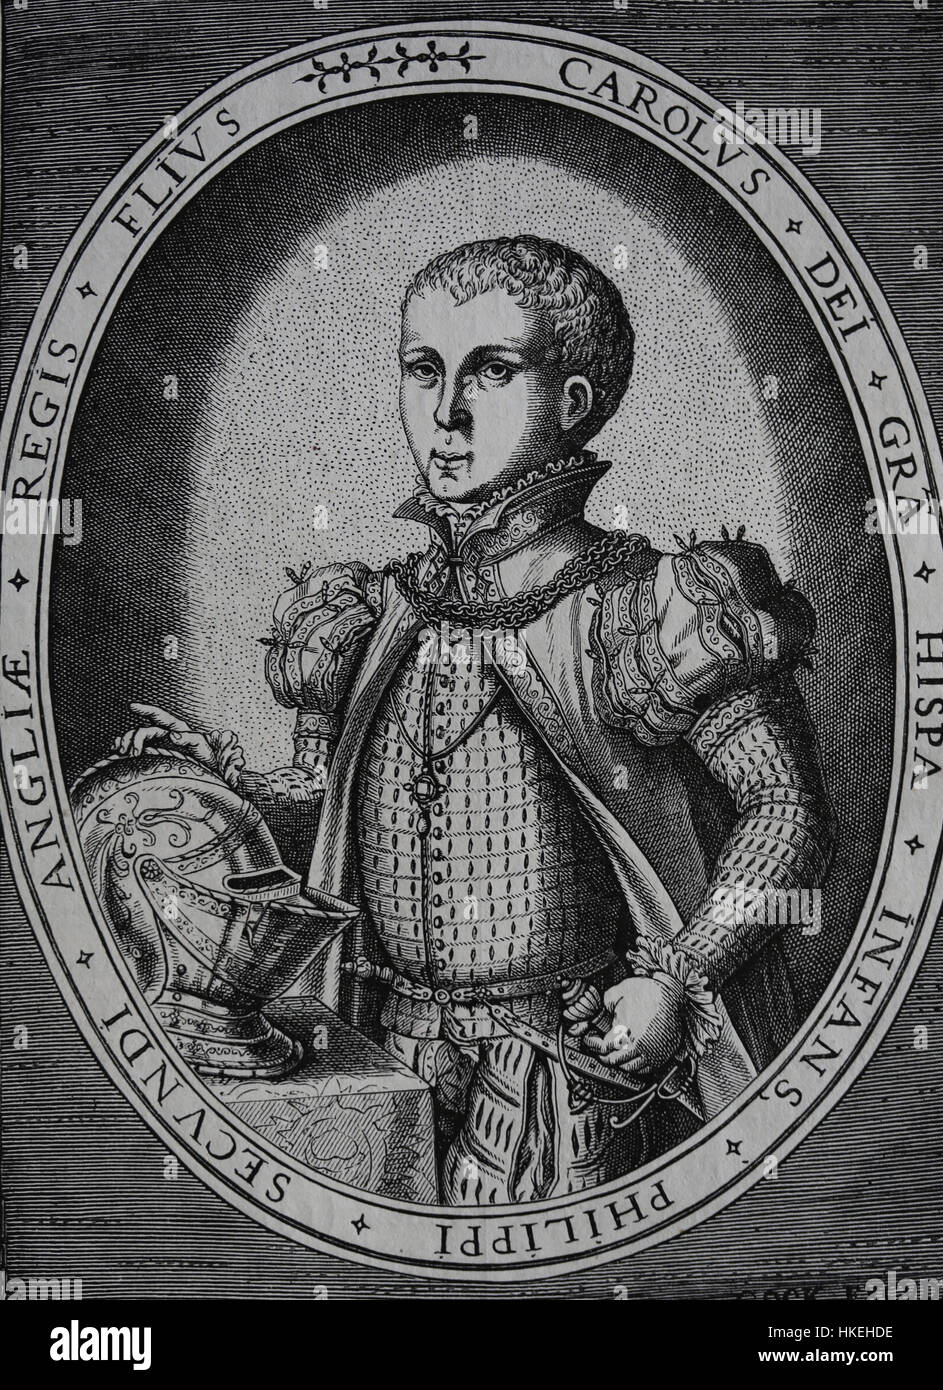 Carlos, Prince of Austria (1545-1568). Son of King Philip II of Spain. Portrait. Engraving by H. Goks. - Stock Image